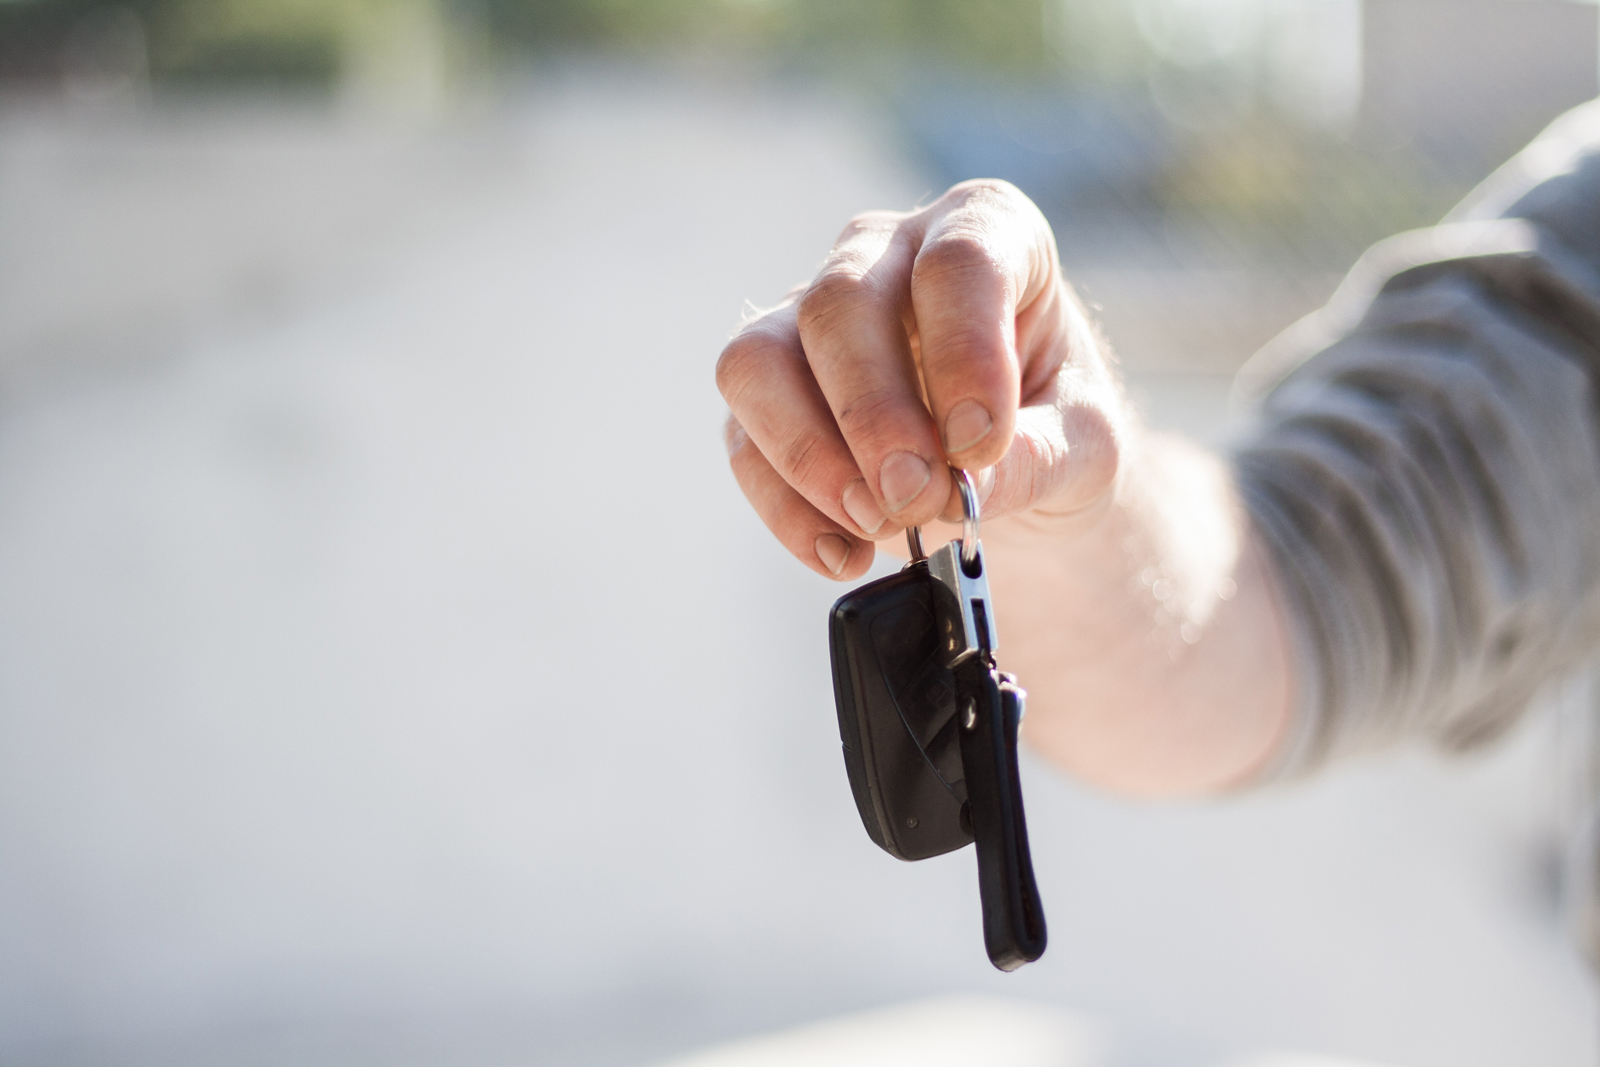 A person handing keys to a new driver